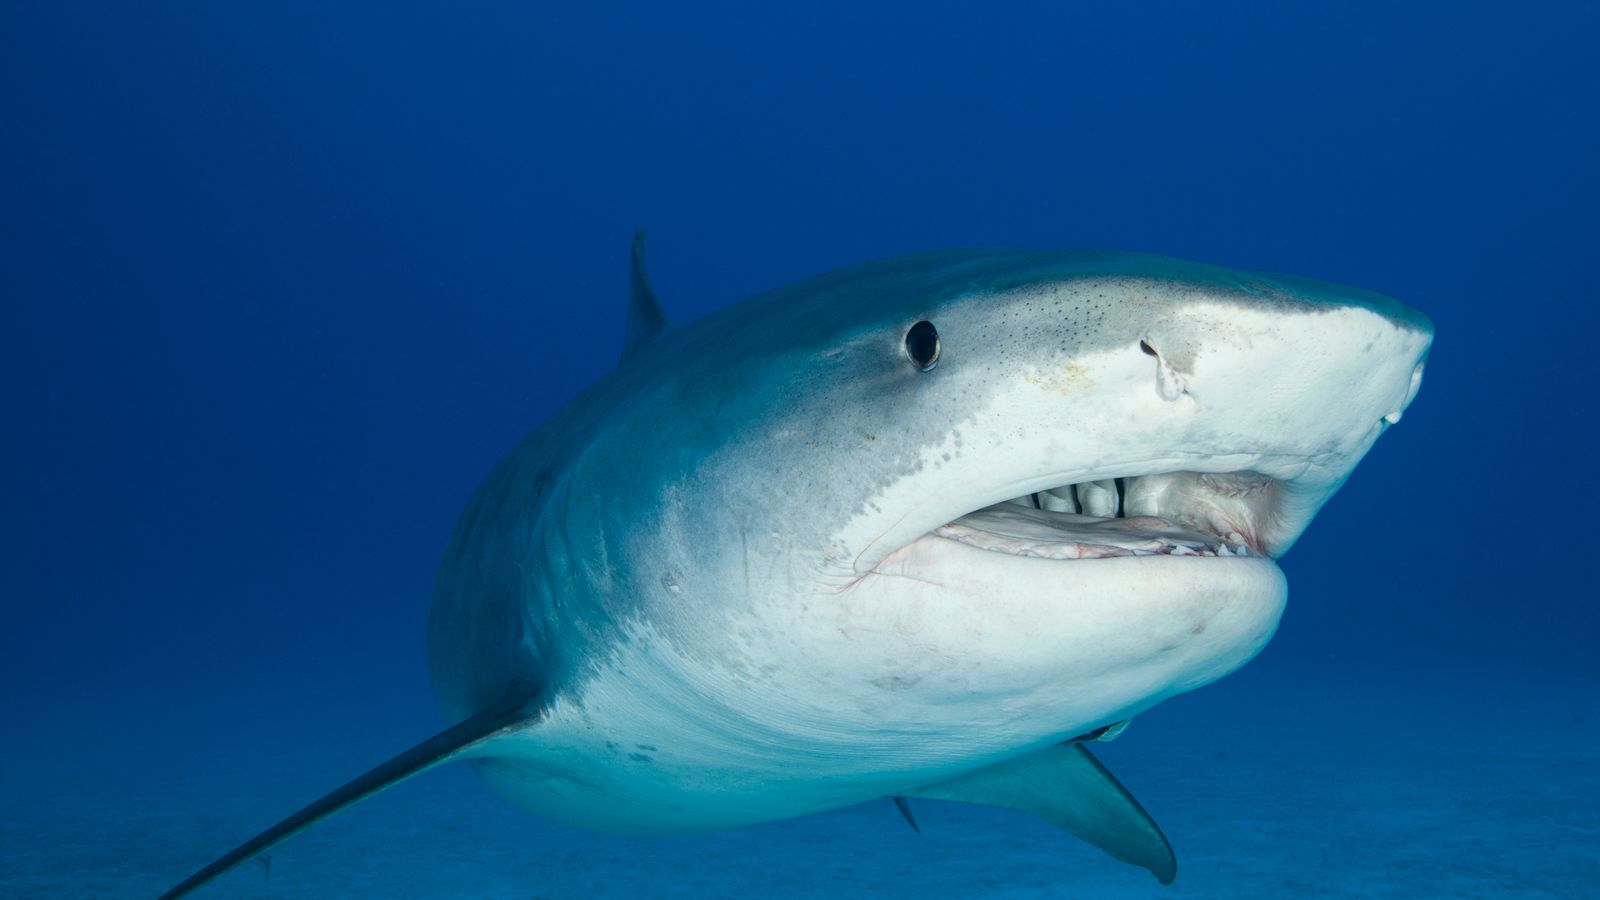 Sharks killed after attacks on woman and girl in the Great Barrier Reef